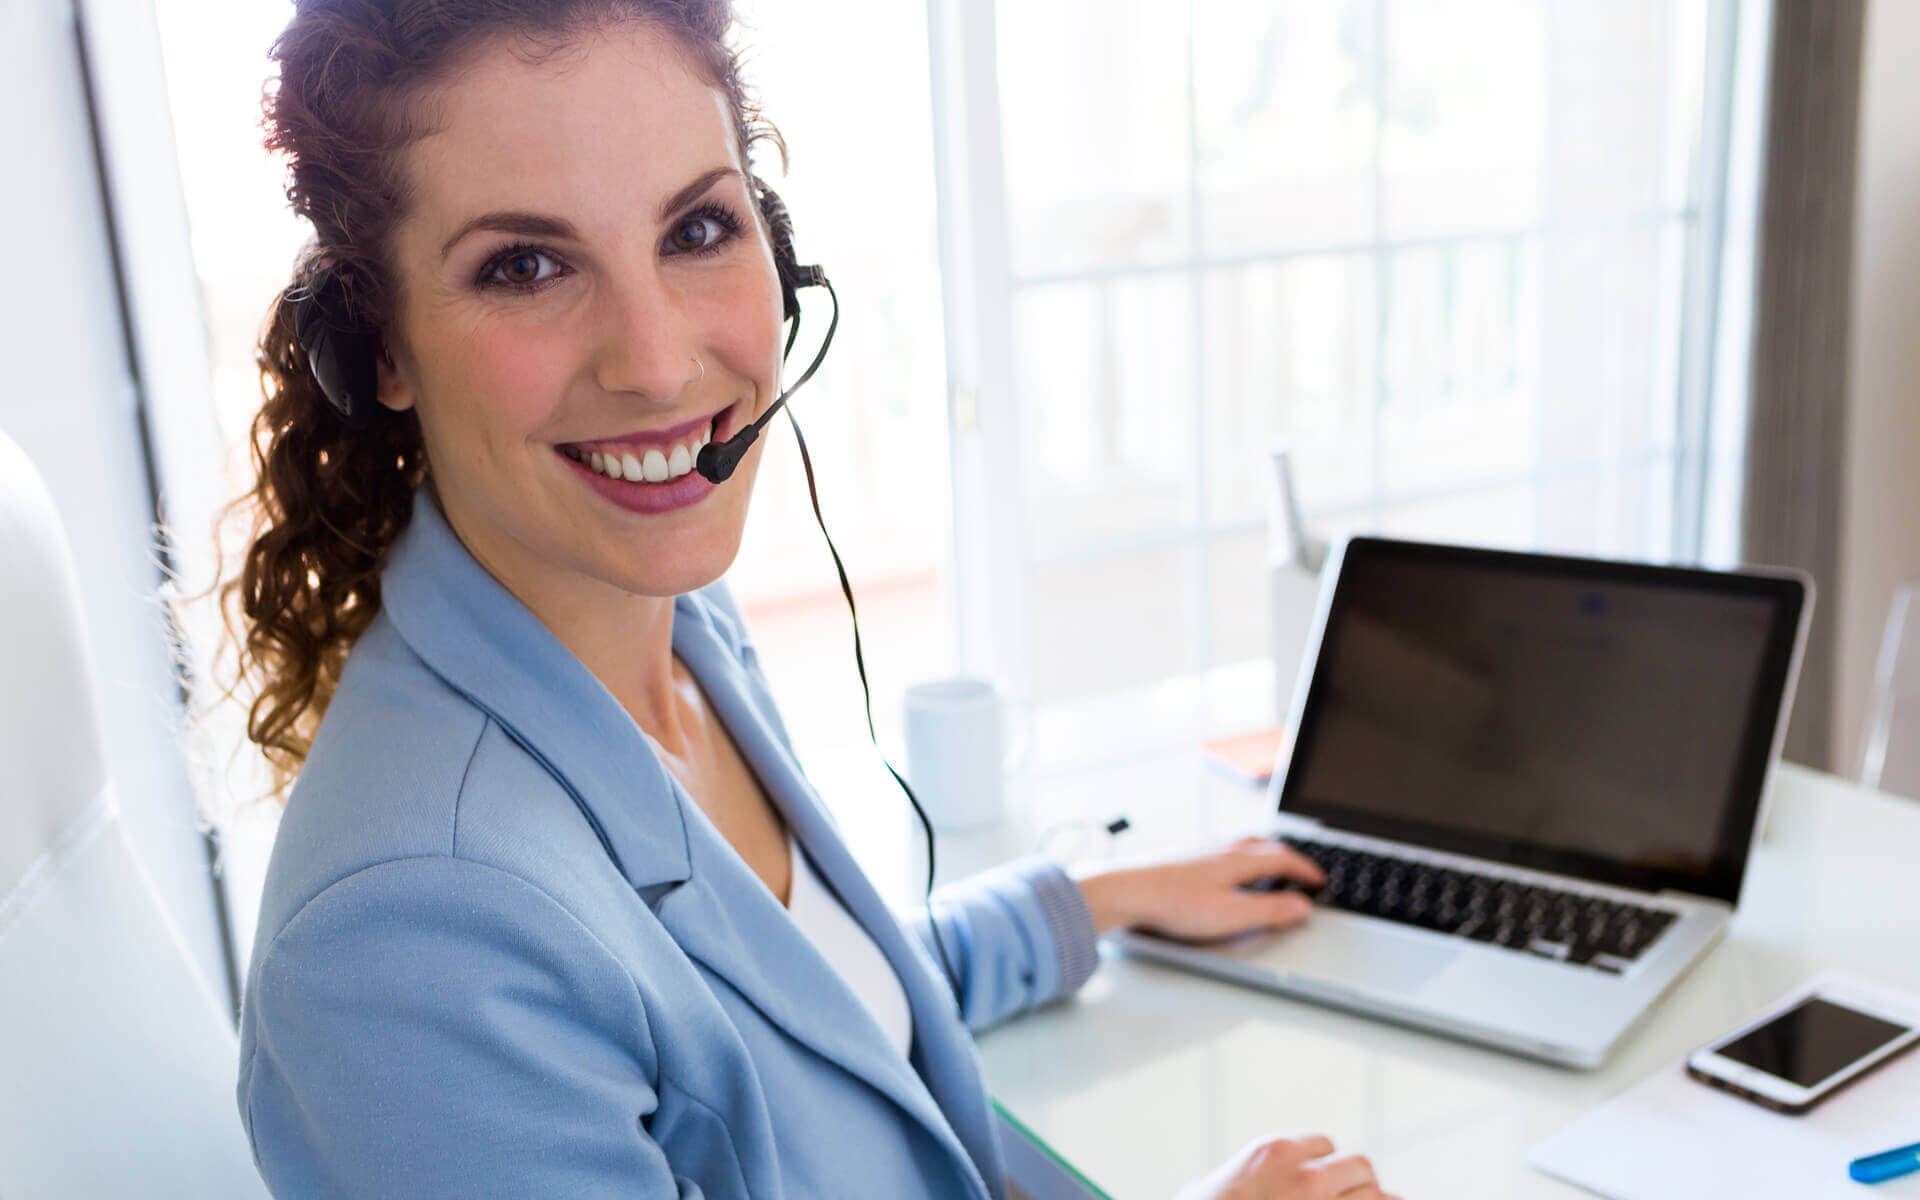 Contact Center Quality Assist